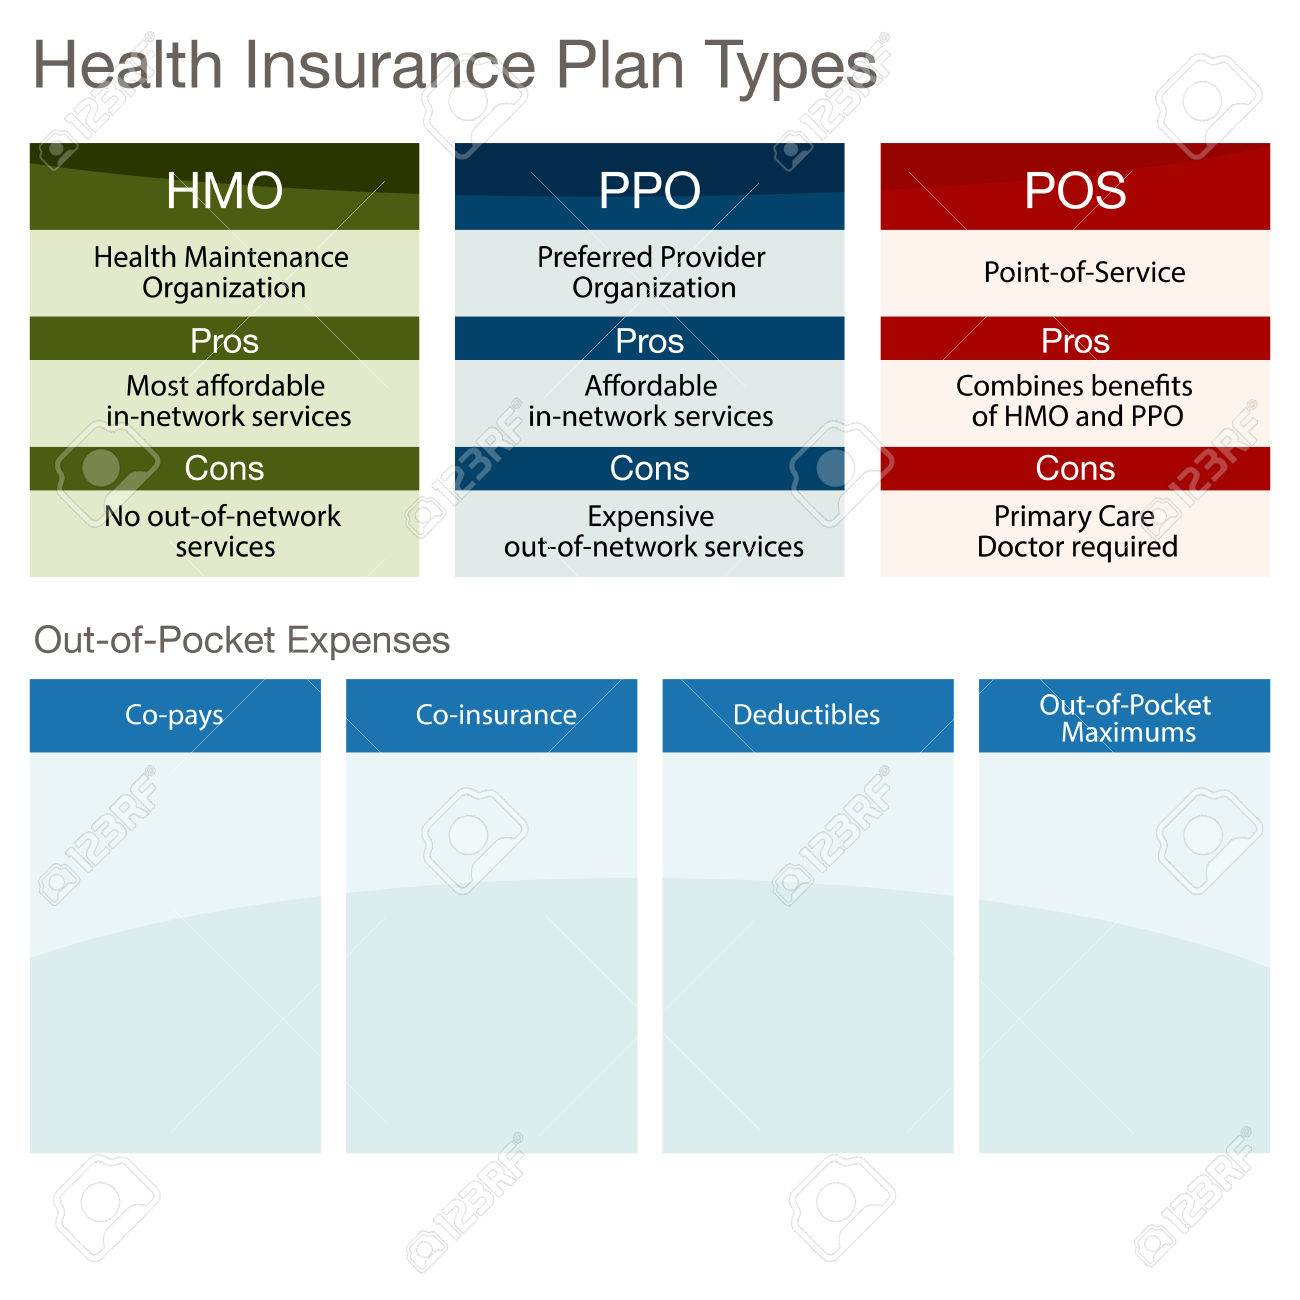 Health Insurance Plans >> An Image Of A Health Insurance Plan Type Chart